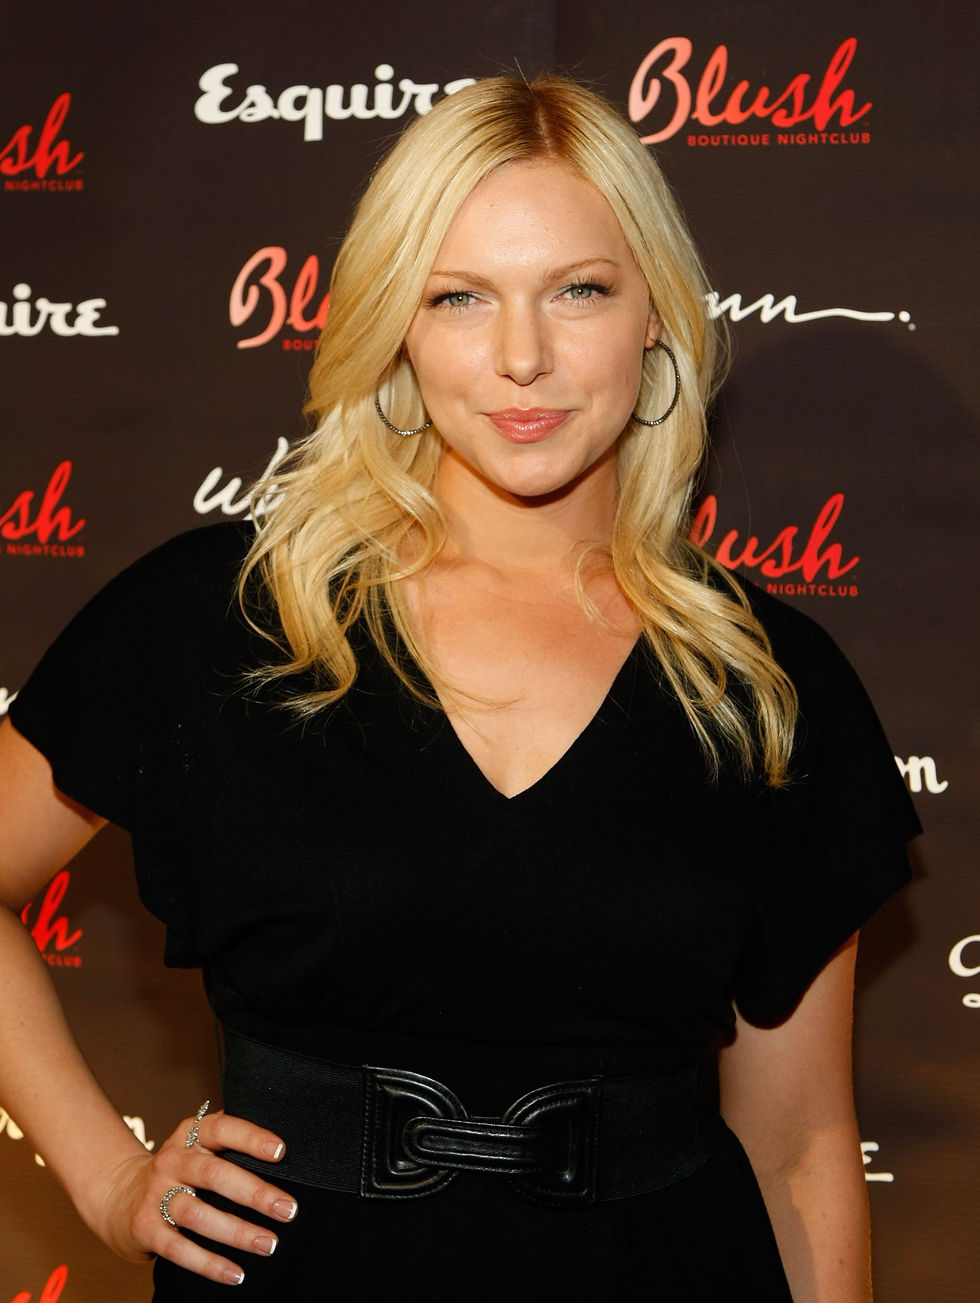 laura-prepon-blush-boutique-nightclubs-one-year-anniversary-in-las-vegas-01